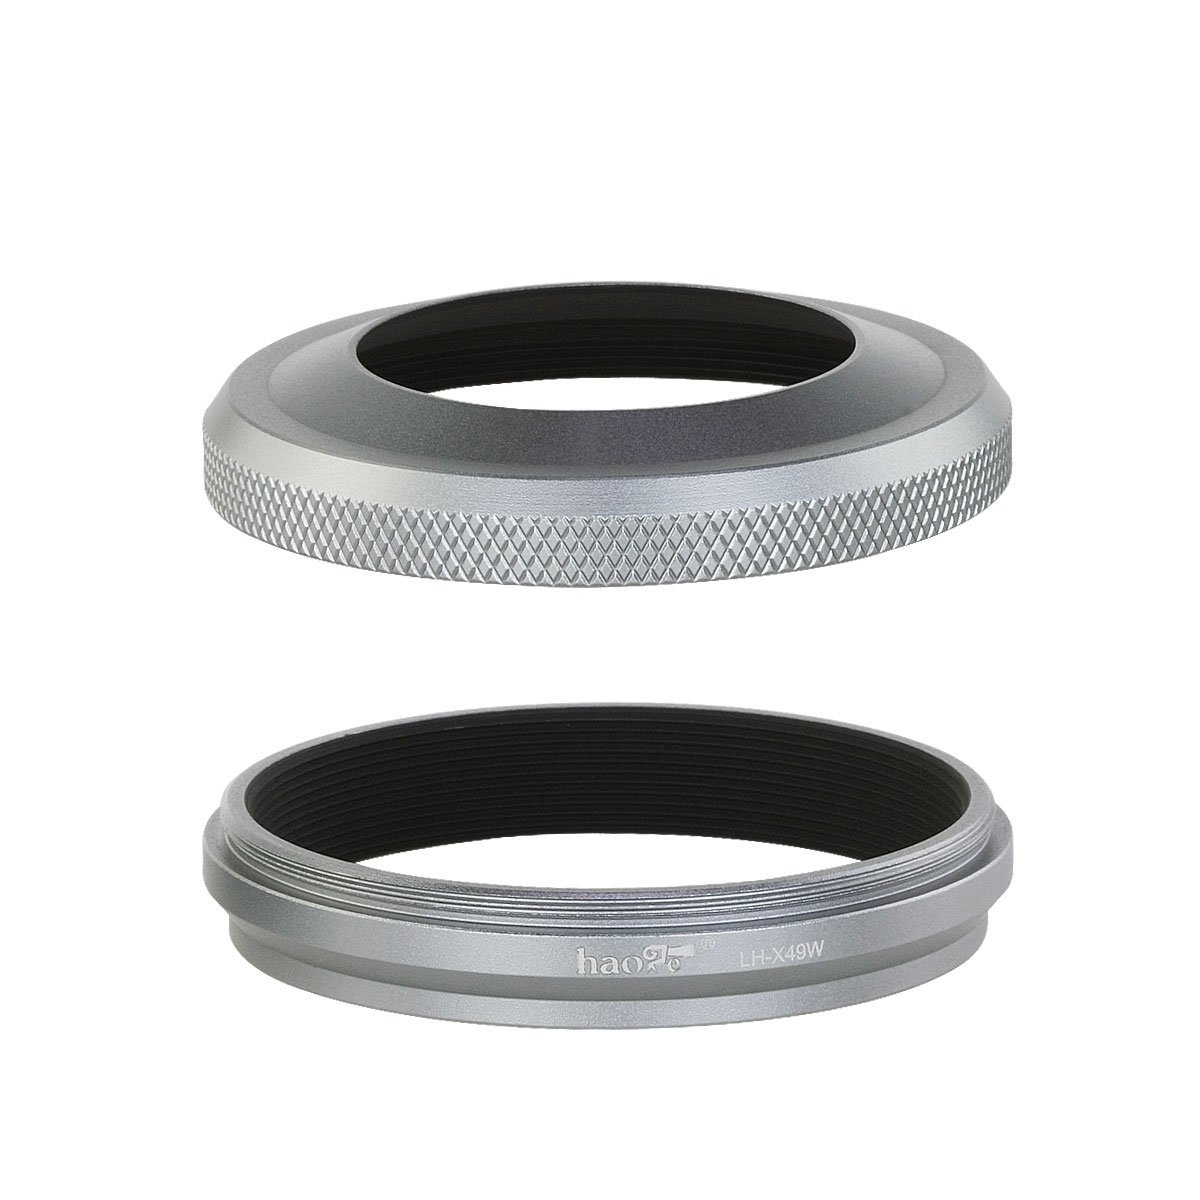 Lh X49w Lens Hood W Adapter Ring For Fuji Fujifilm X100f